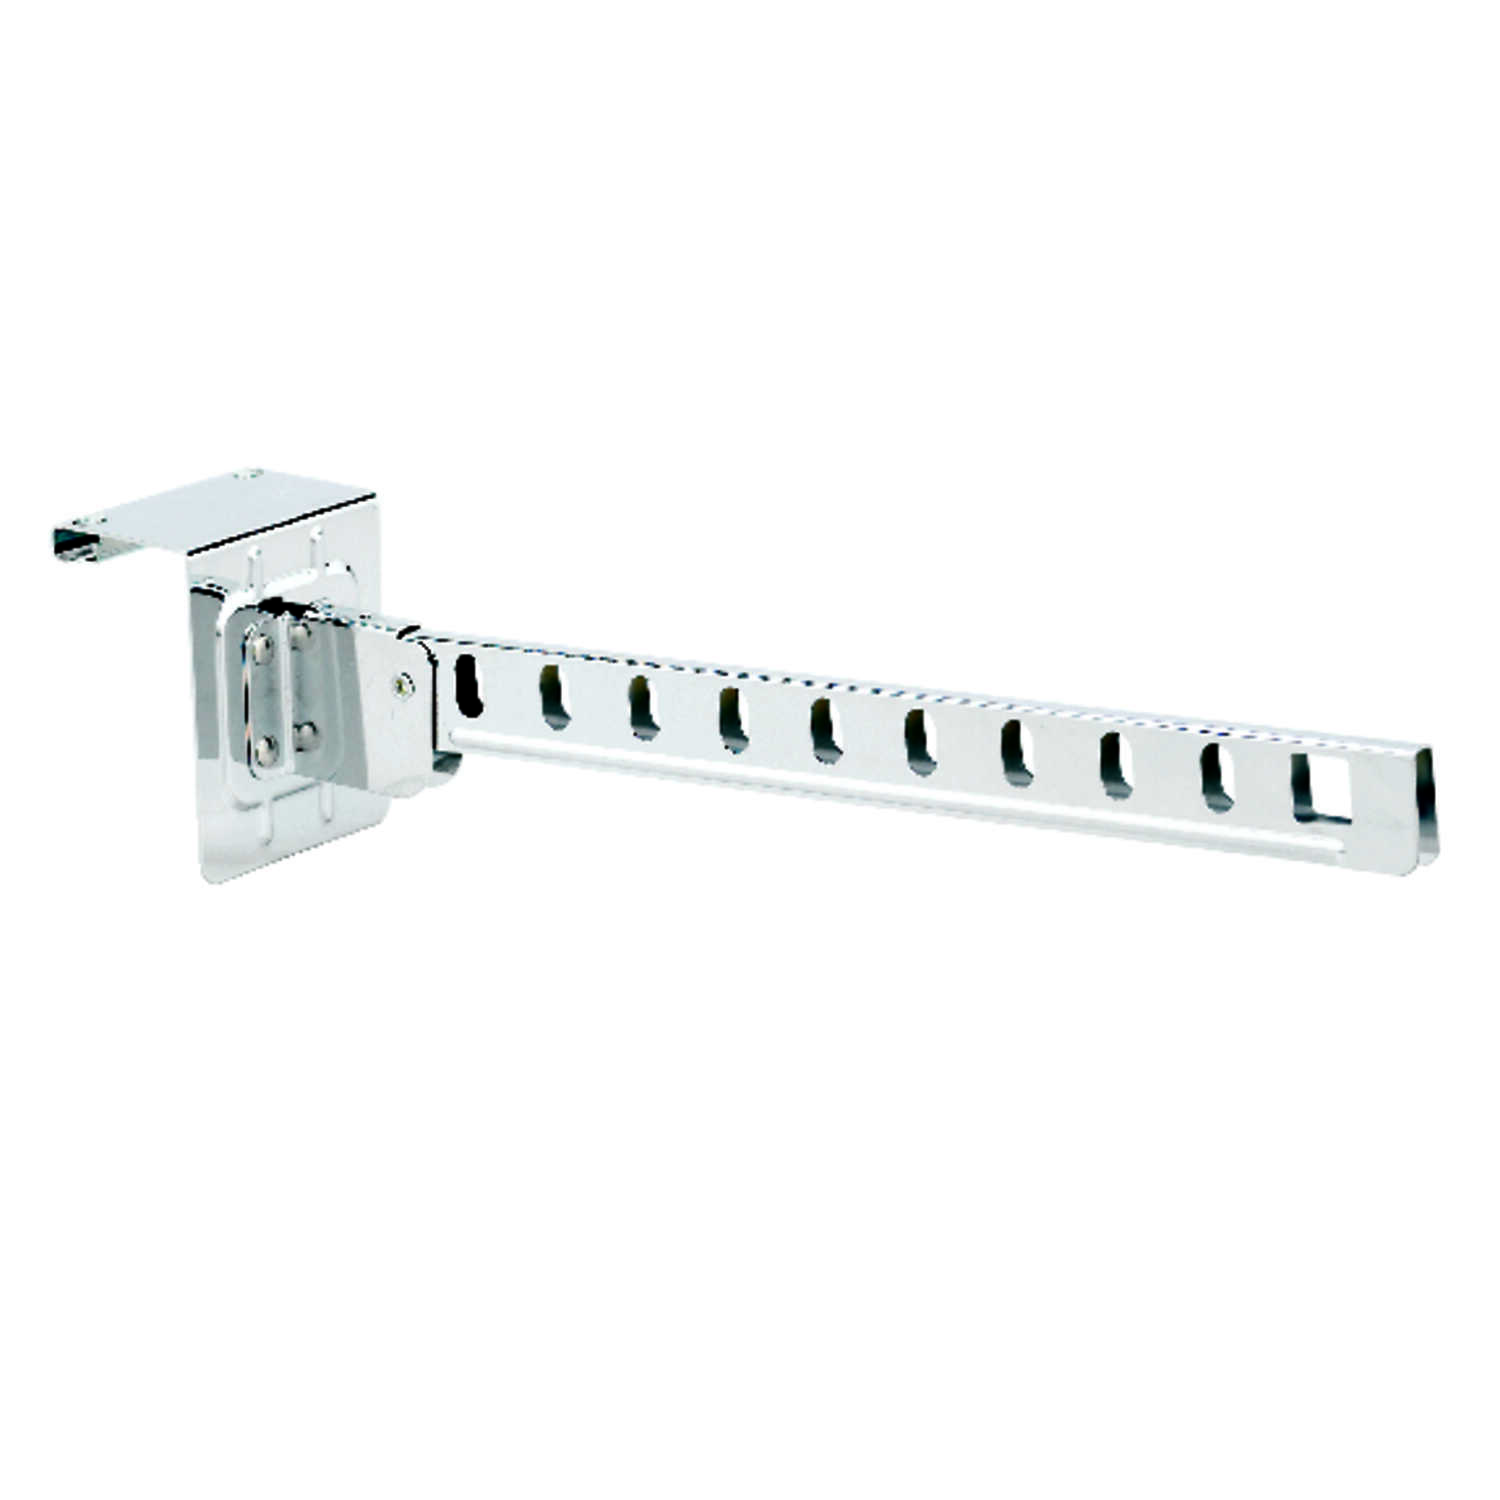 Whitmor  2-7/8 in. H x 3-1/2 in. W x 16-1/2 in. L Steel  Over The Door Hanger Holder  1 pk